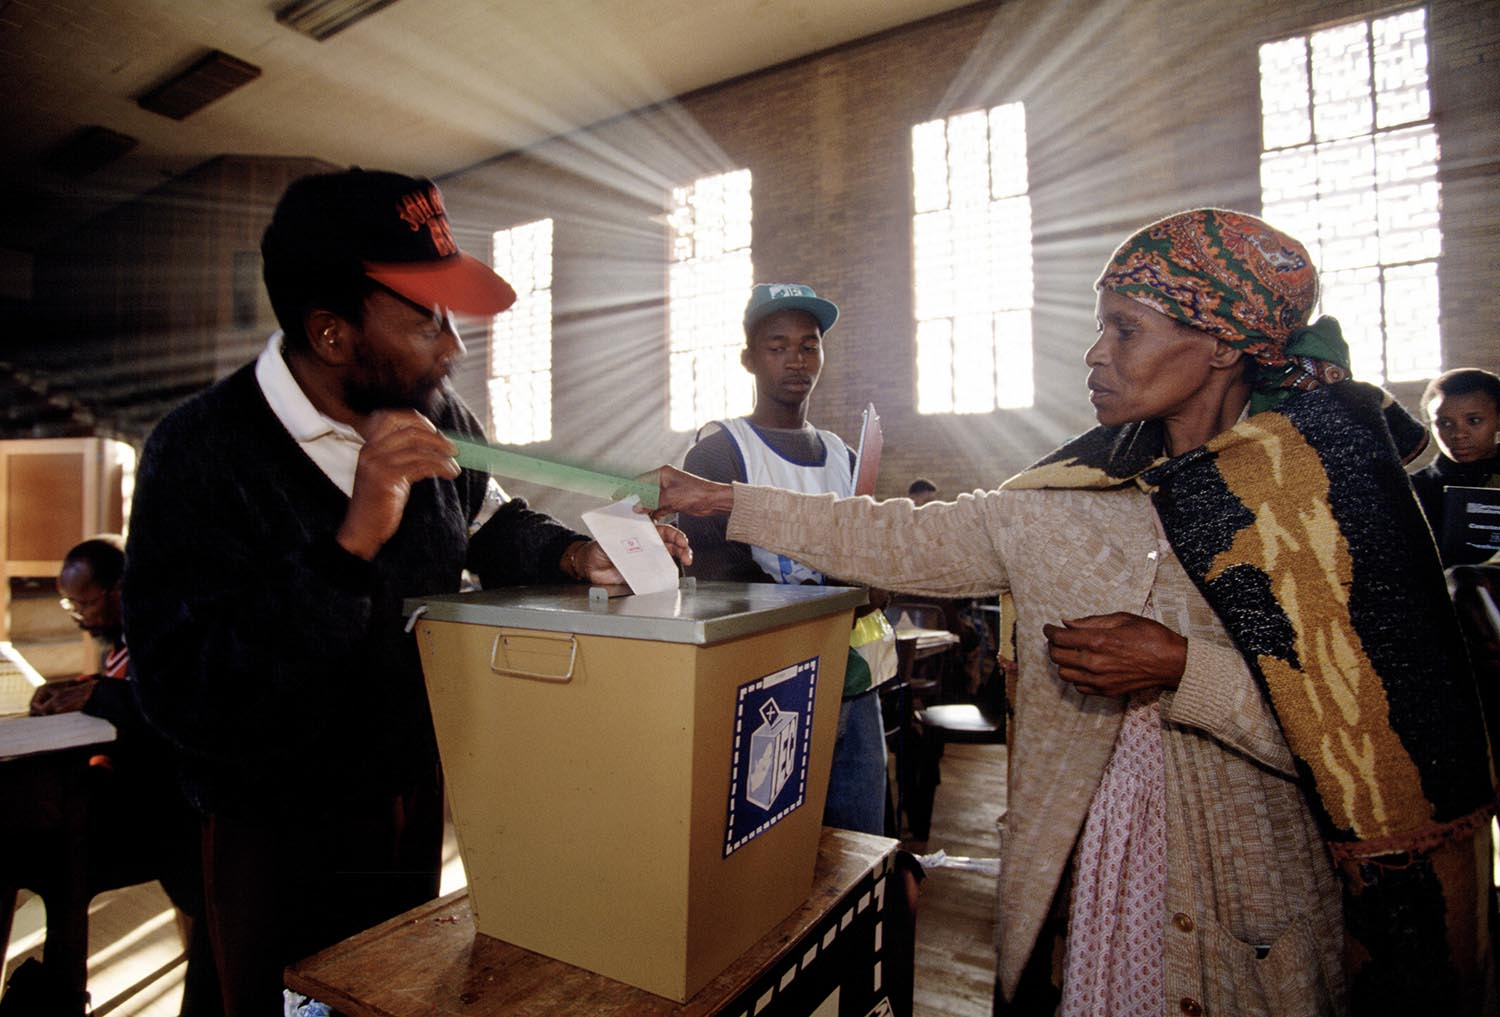 A woman casts her ballot at a polling station in Soweto.    Millions of South Africans voted in the nation's first free and democratic general election,  marking the end of centuries of apartheid rule.  Nelson Mandela of the African National Congress (ANC) was elected as the first black President of South Africa.